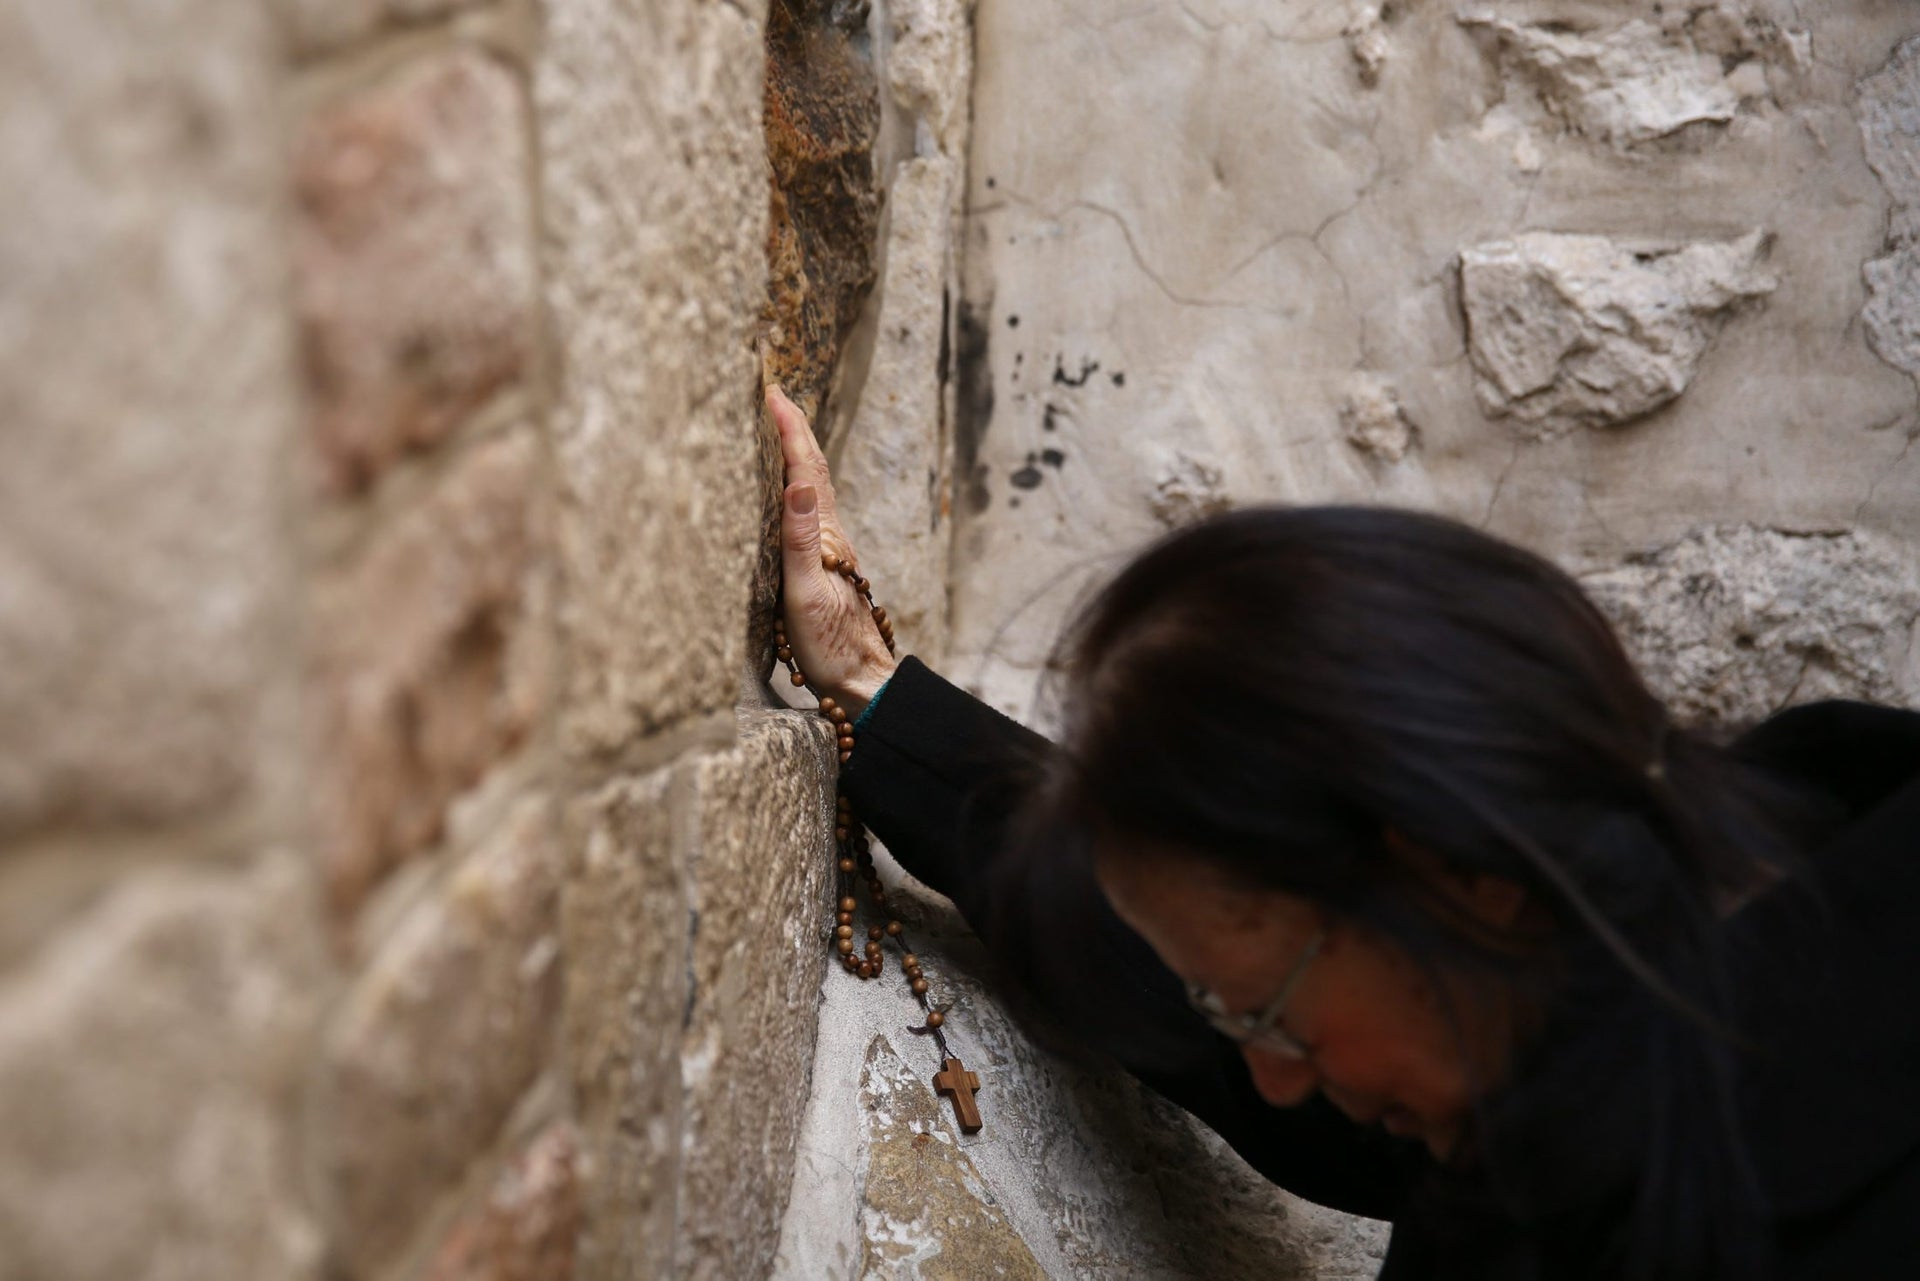 A Catholic pilgrim prays at the 5th station of the Via Dolorosa (Way of Suffering) in Jerusalem's Old City during the Good Friday procession on March 25, 2016.